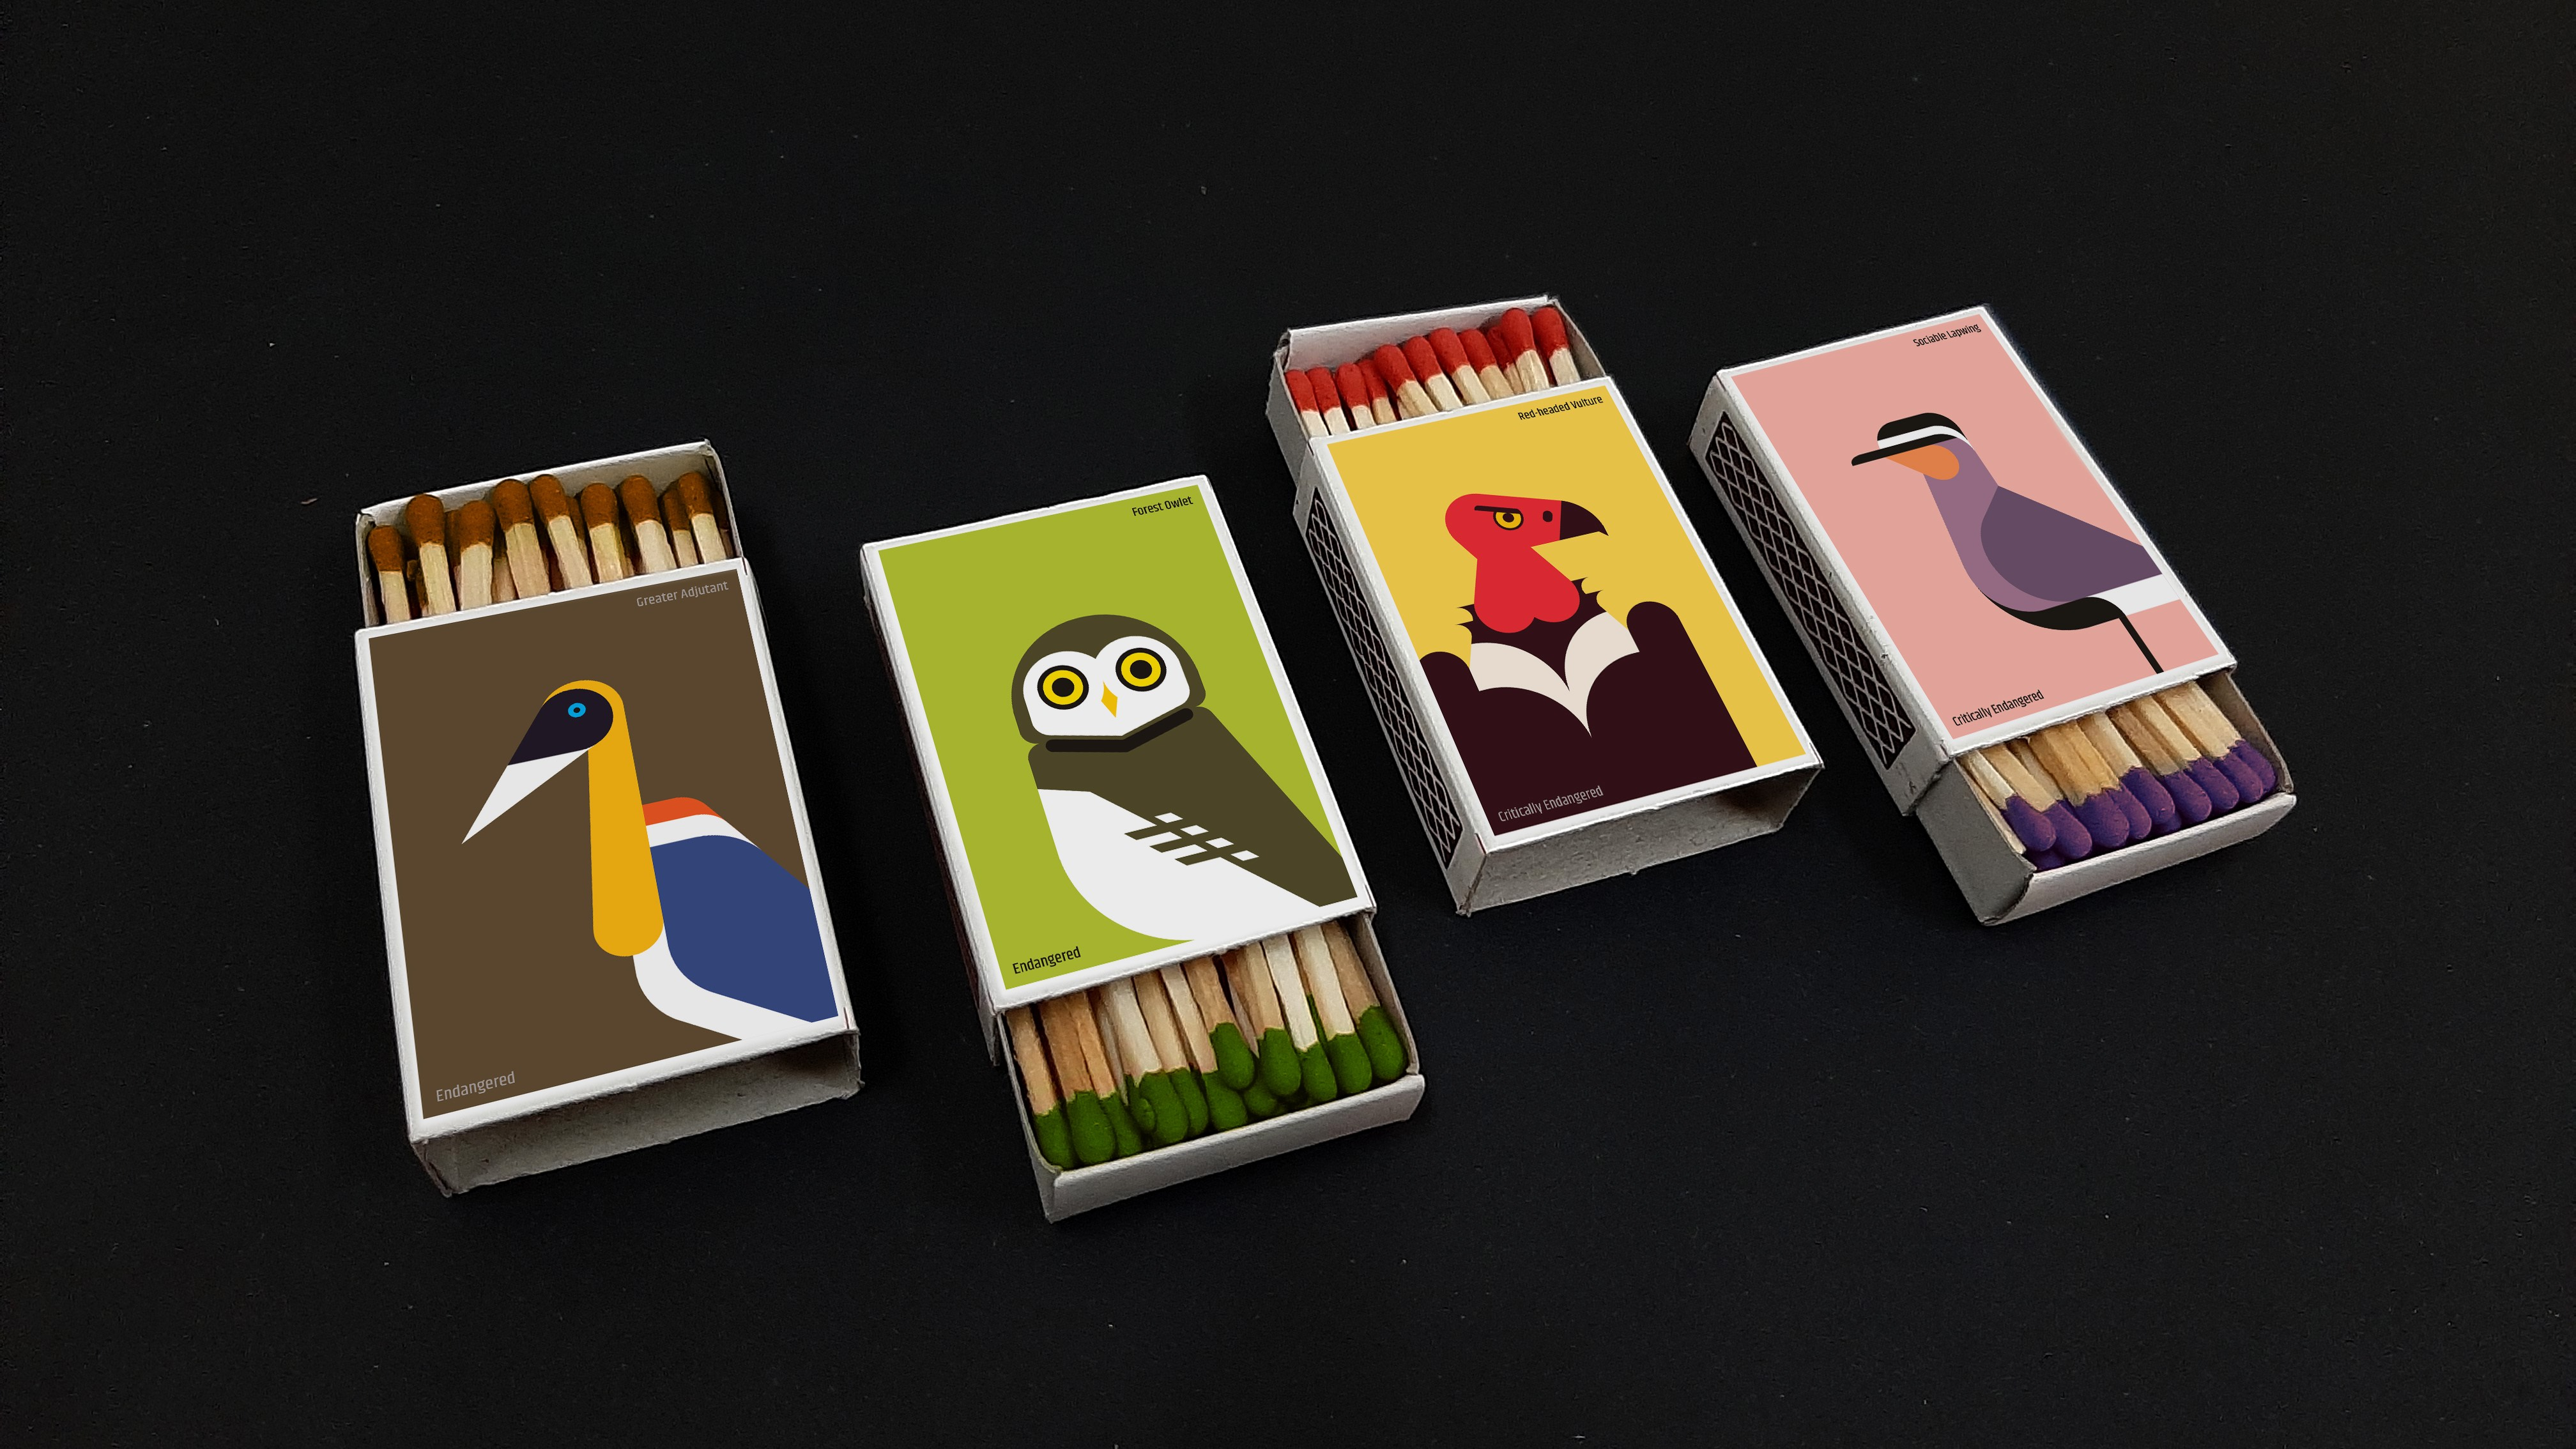 The Burning Birds of India's colourful matchboxes are designed to inspire people to learn about and protect birds that are in danger.